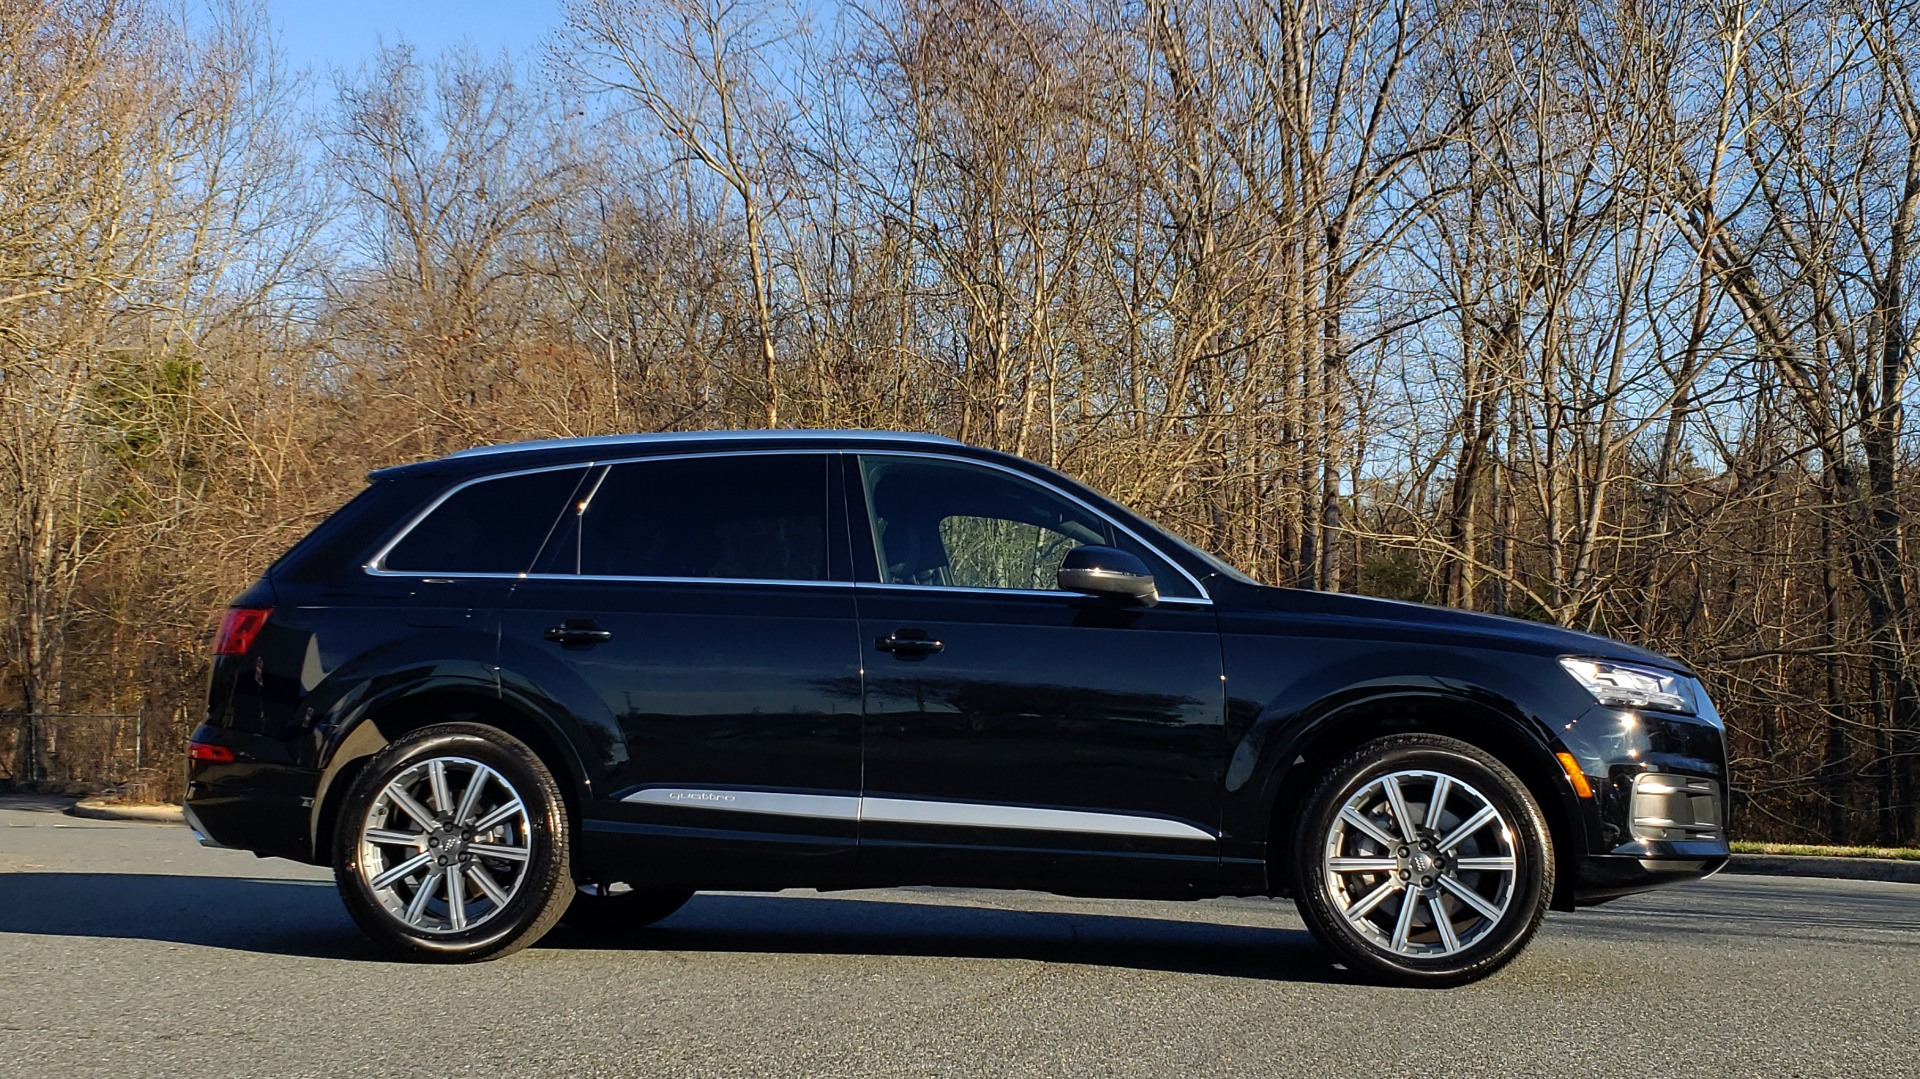 Used 2019 Audi Q7 PREMIUM PLUS / NAV / PANO-ROOF / 3-ROW / REARVIEW for sale Sold at Formula Imports in Charlotte NC 28227 5